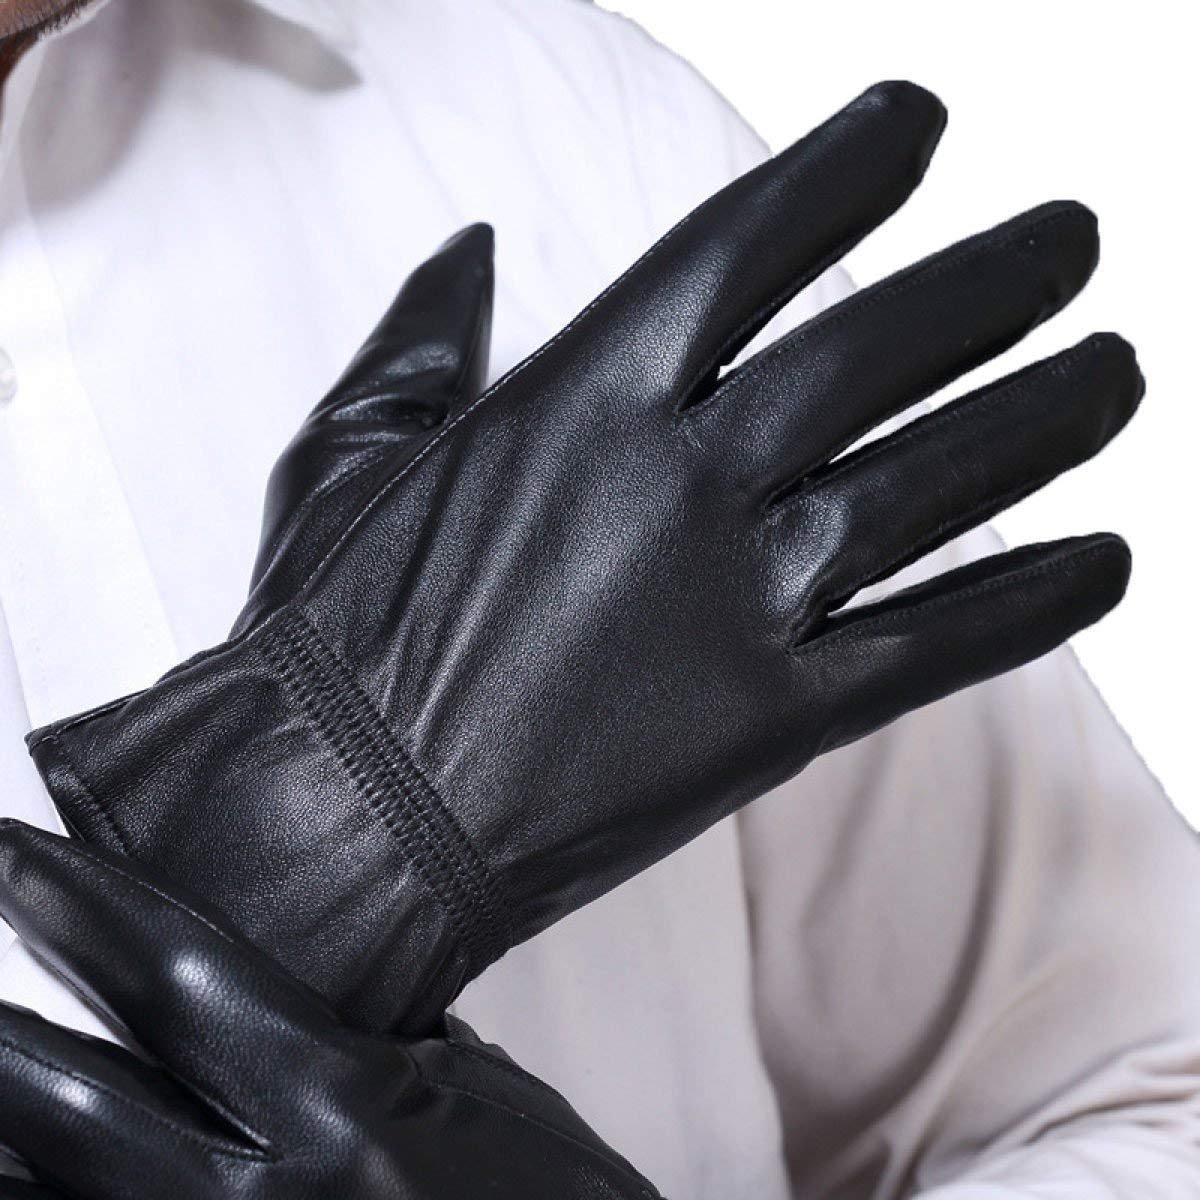 CWJ Men's Thin Warm Drive Thick Plate Gloves,Black,Large